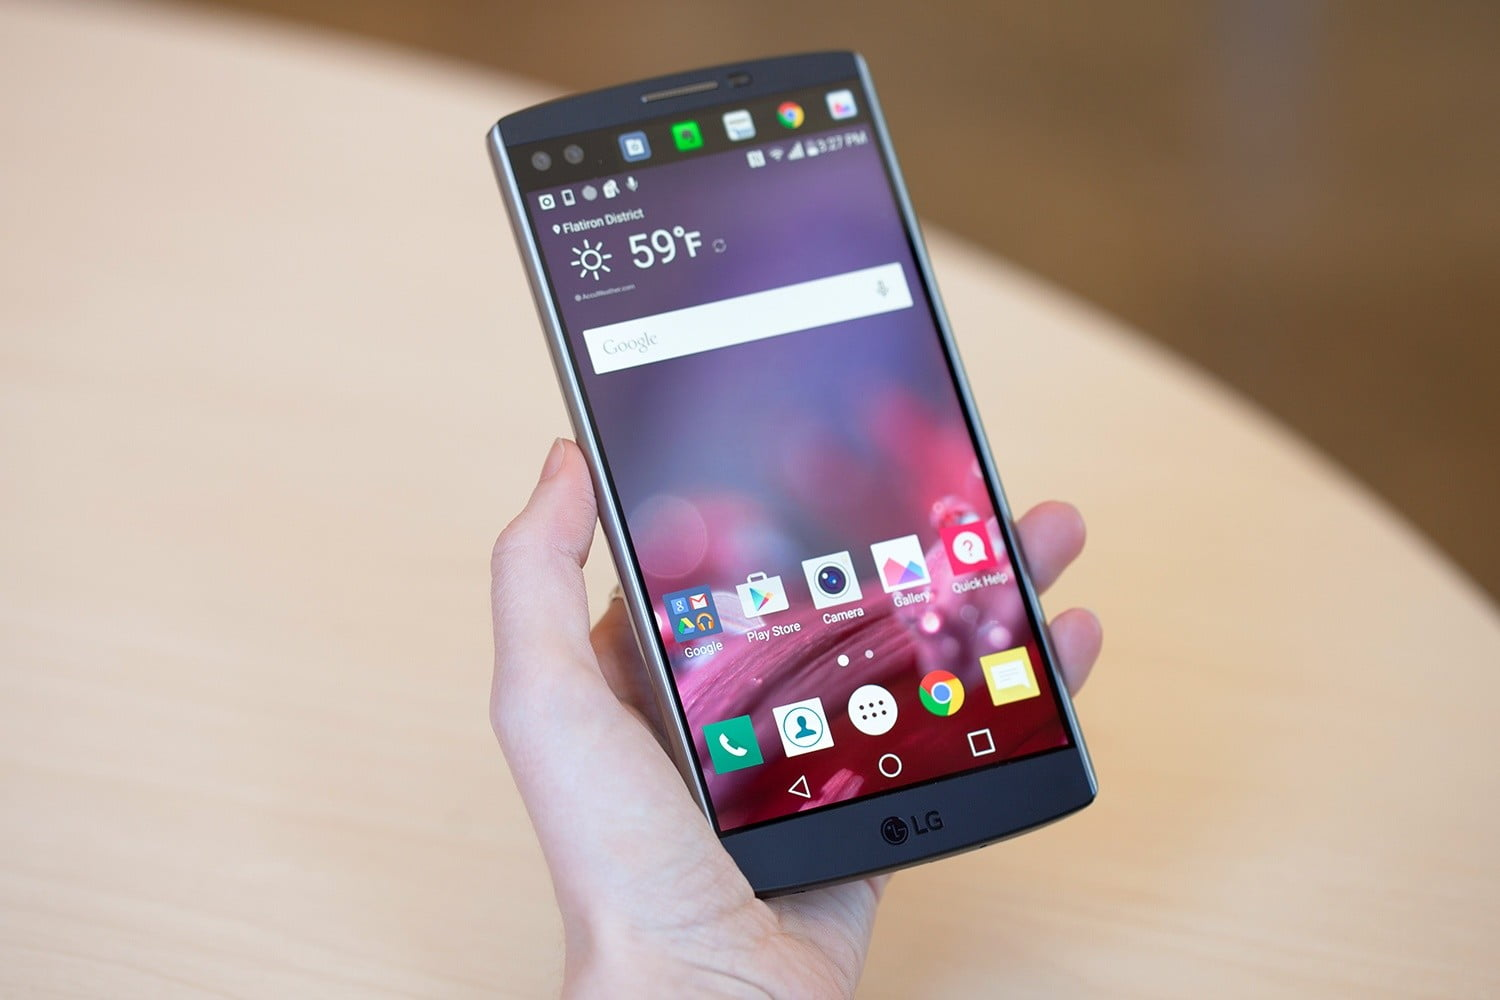 LG V10: 7 Common Problems, and How to Fix Them.